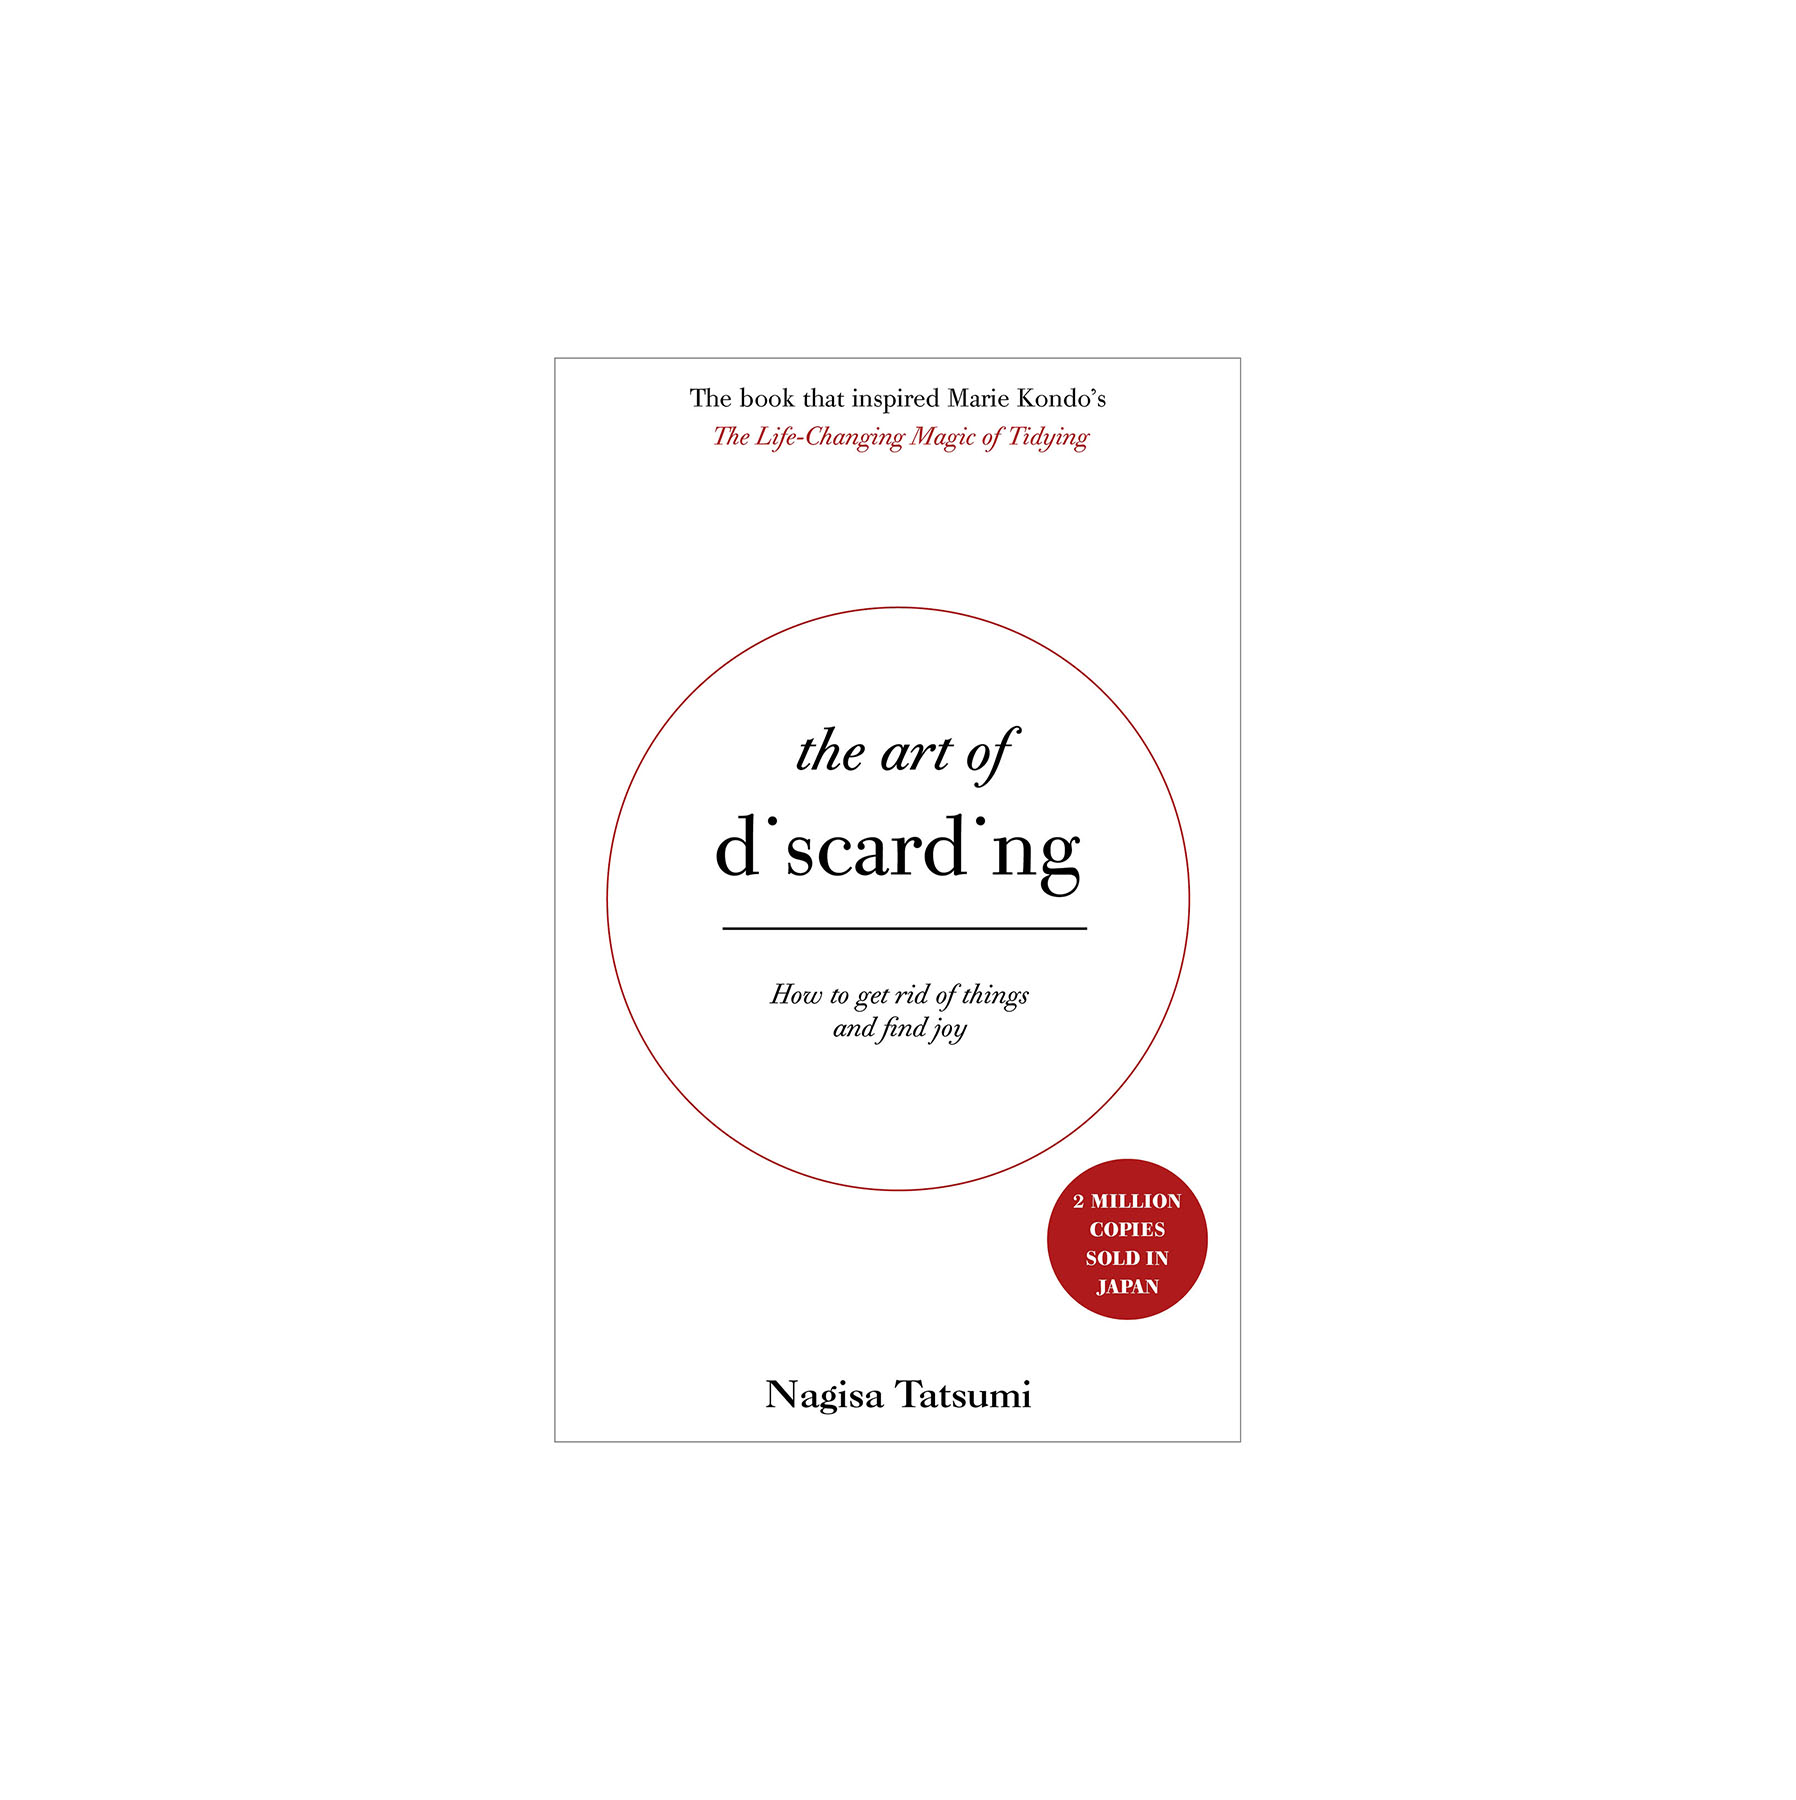 The Art of Discarding, by Nagisa Tatsumi